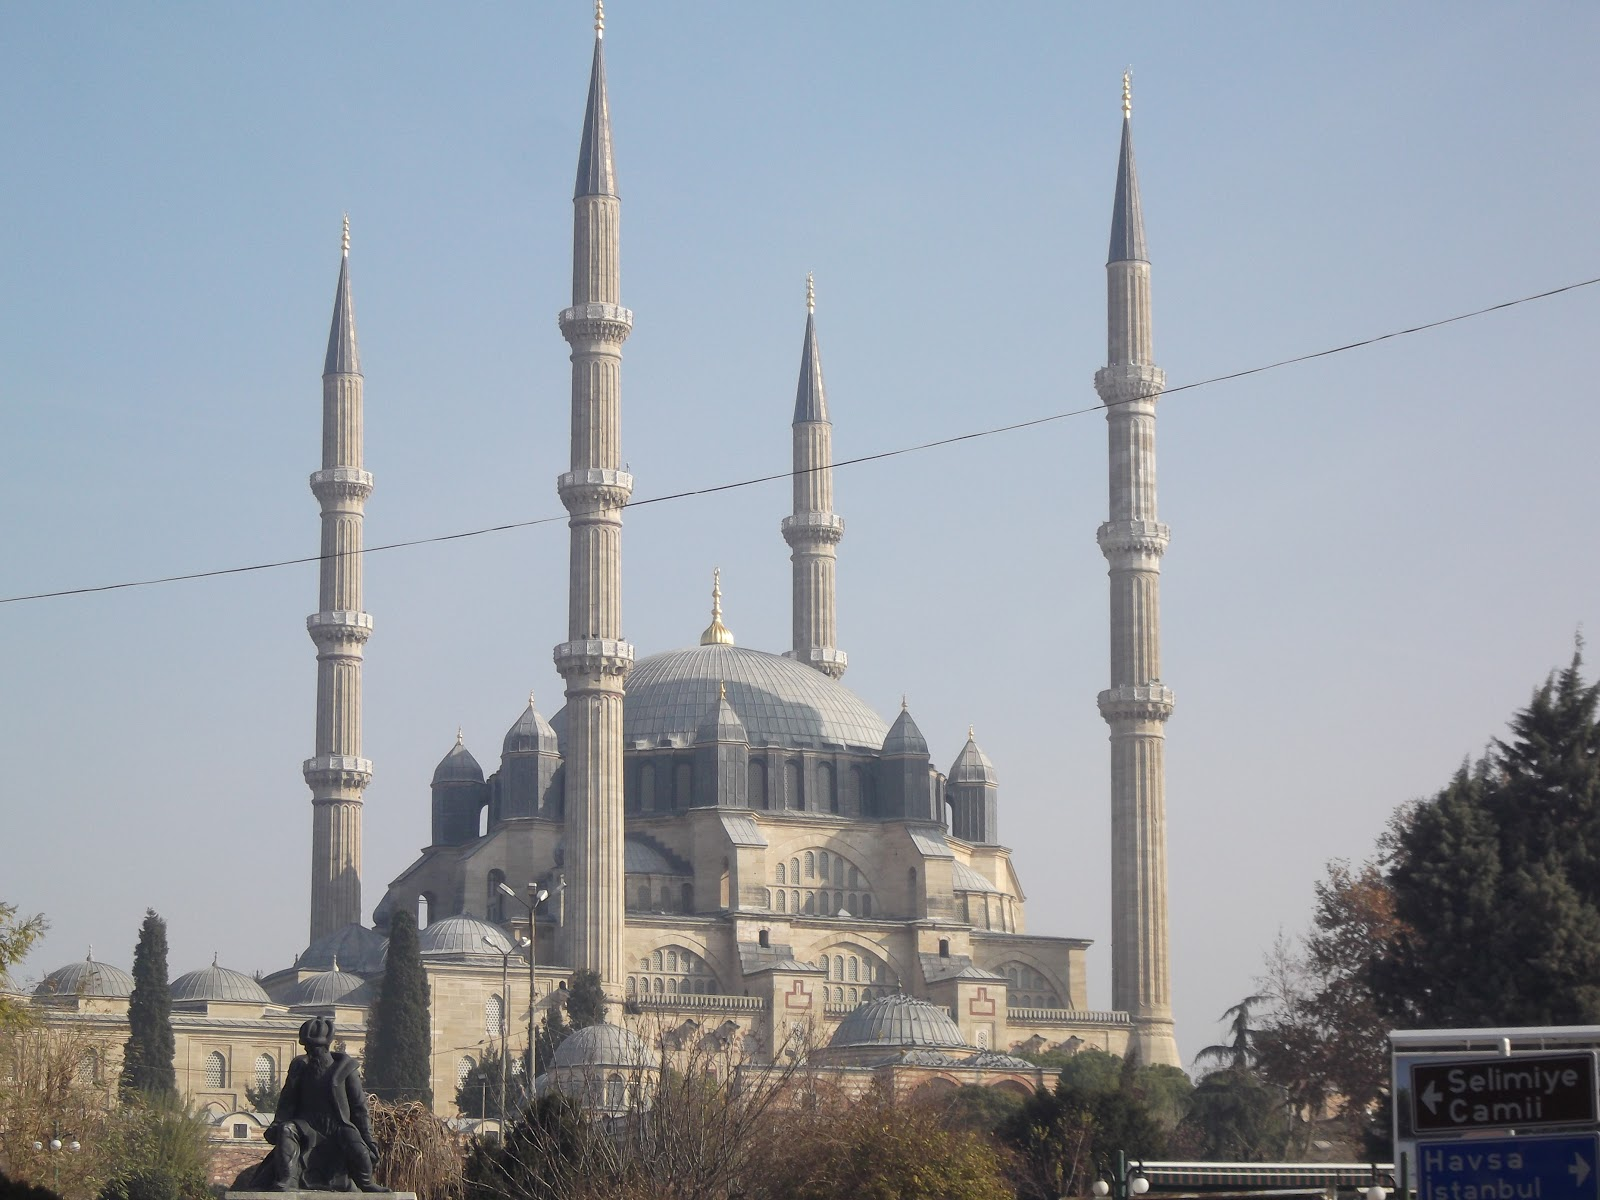 Selimiye Mosque, Edirne  Turkeys Travel Photos